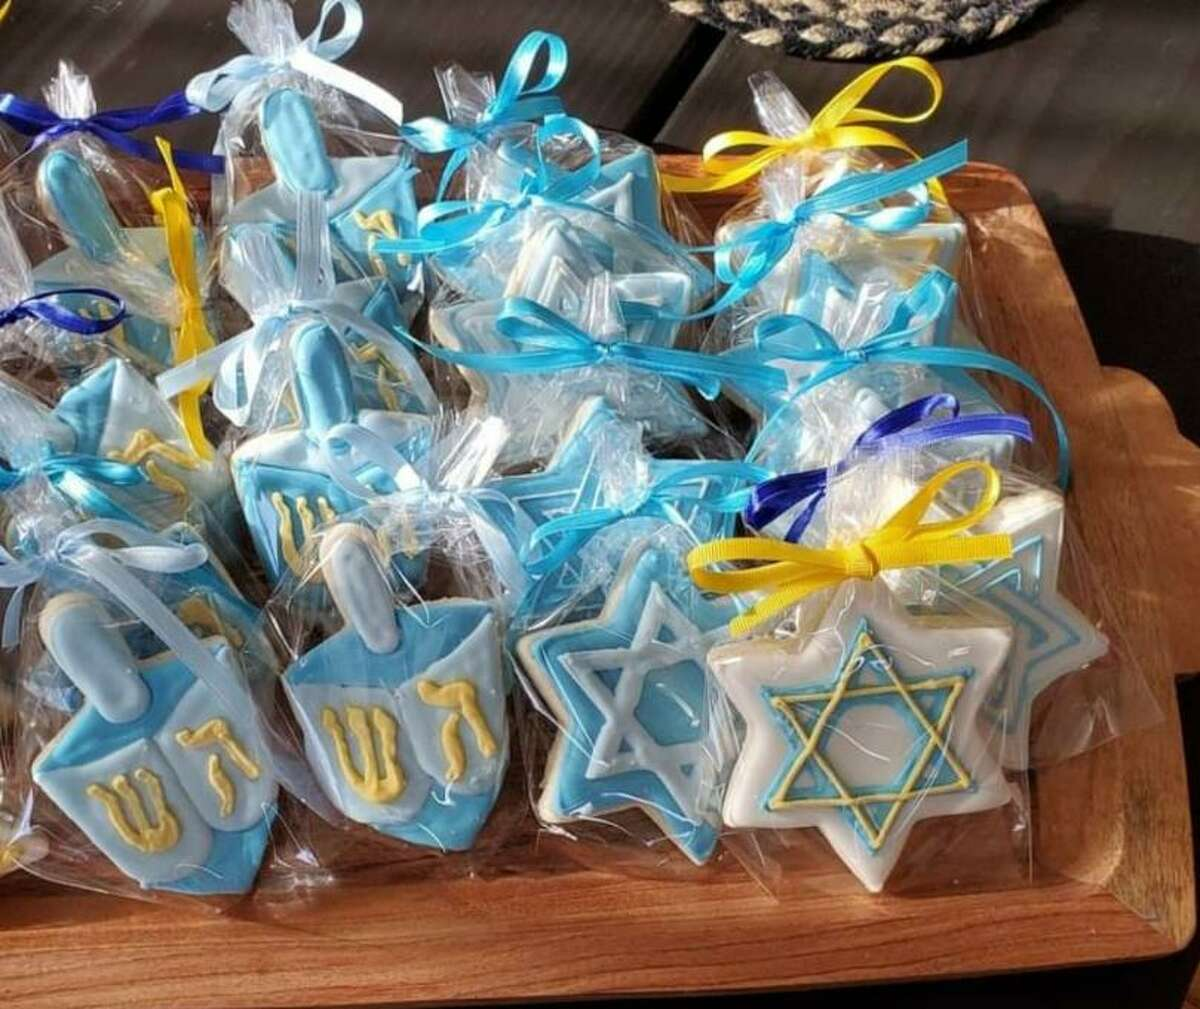 Hanukkah cookies will be available at Emily's Baking Company's next pop-up shop Dec. 19.